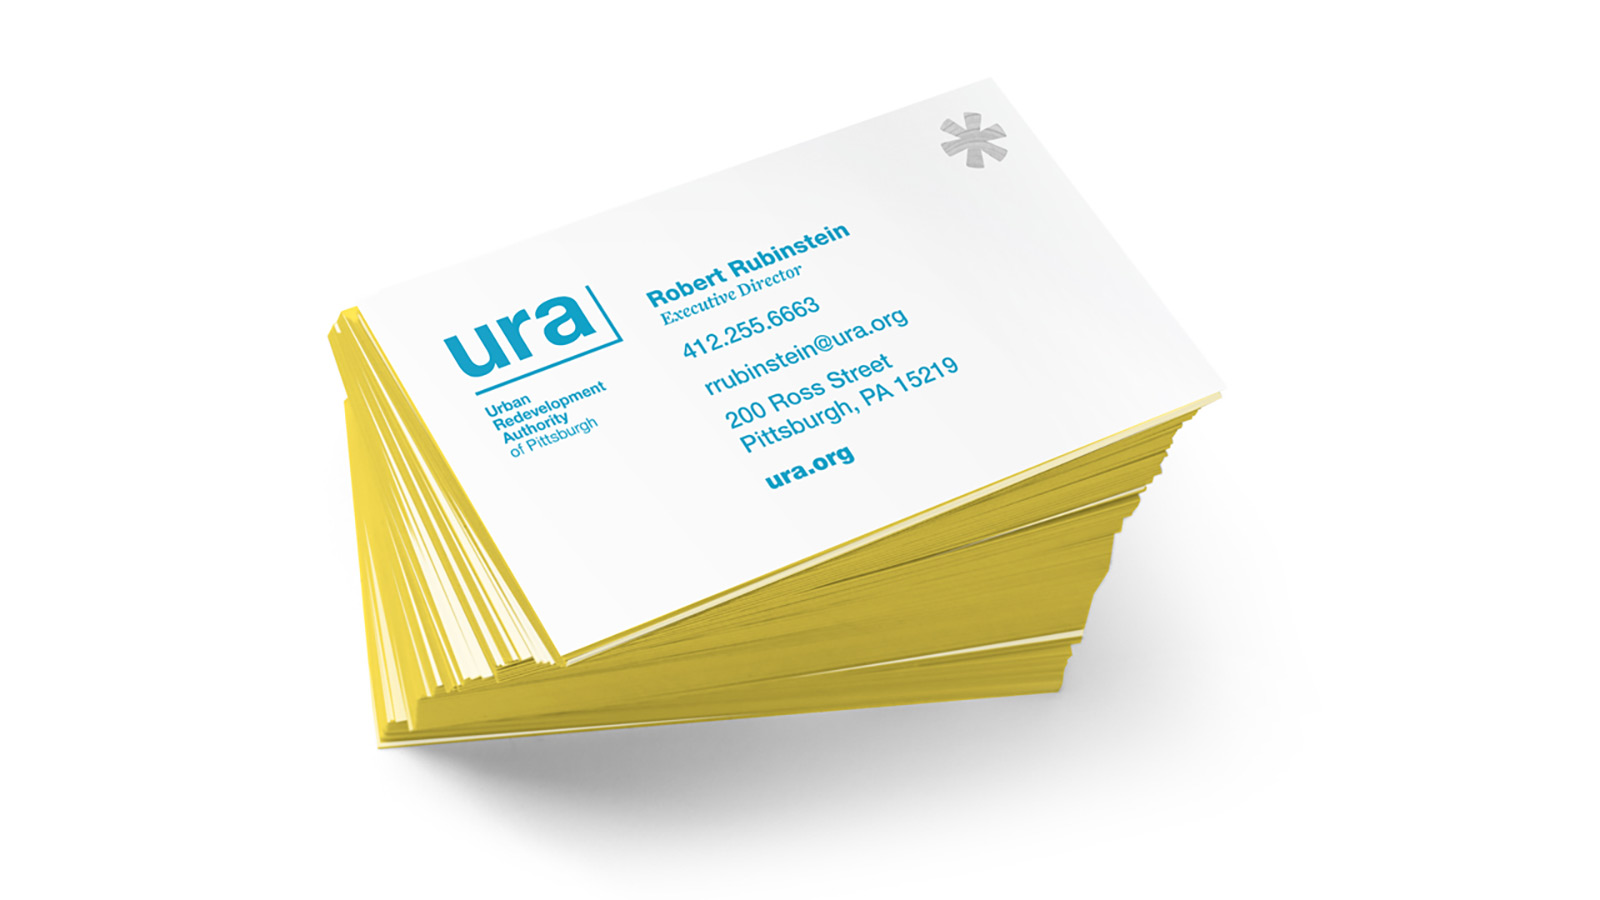 Ura 11 business card d